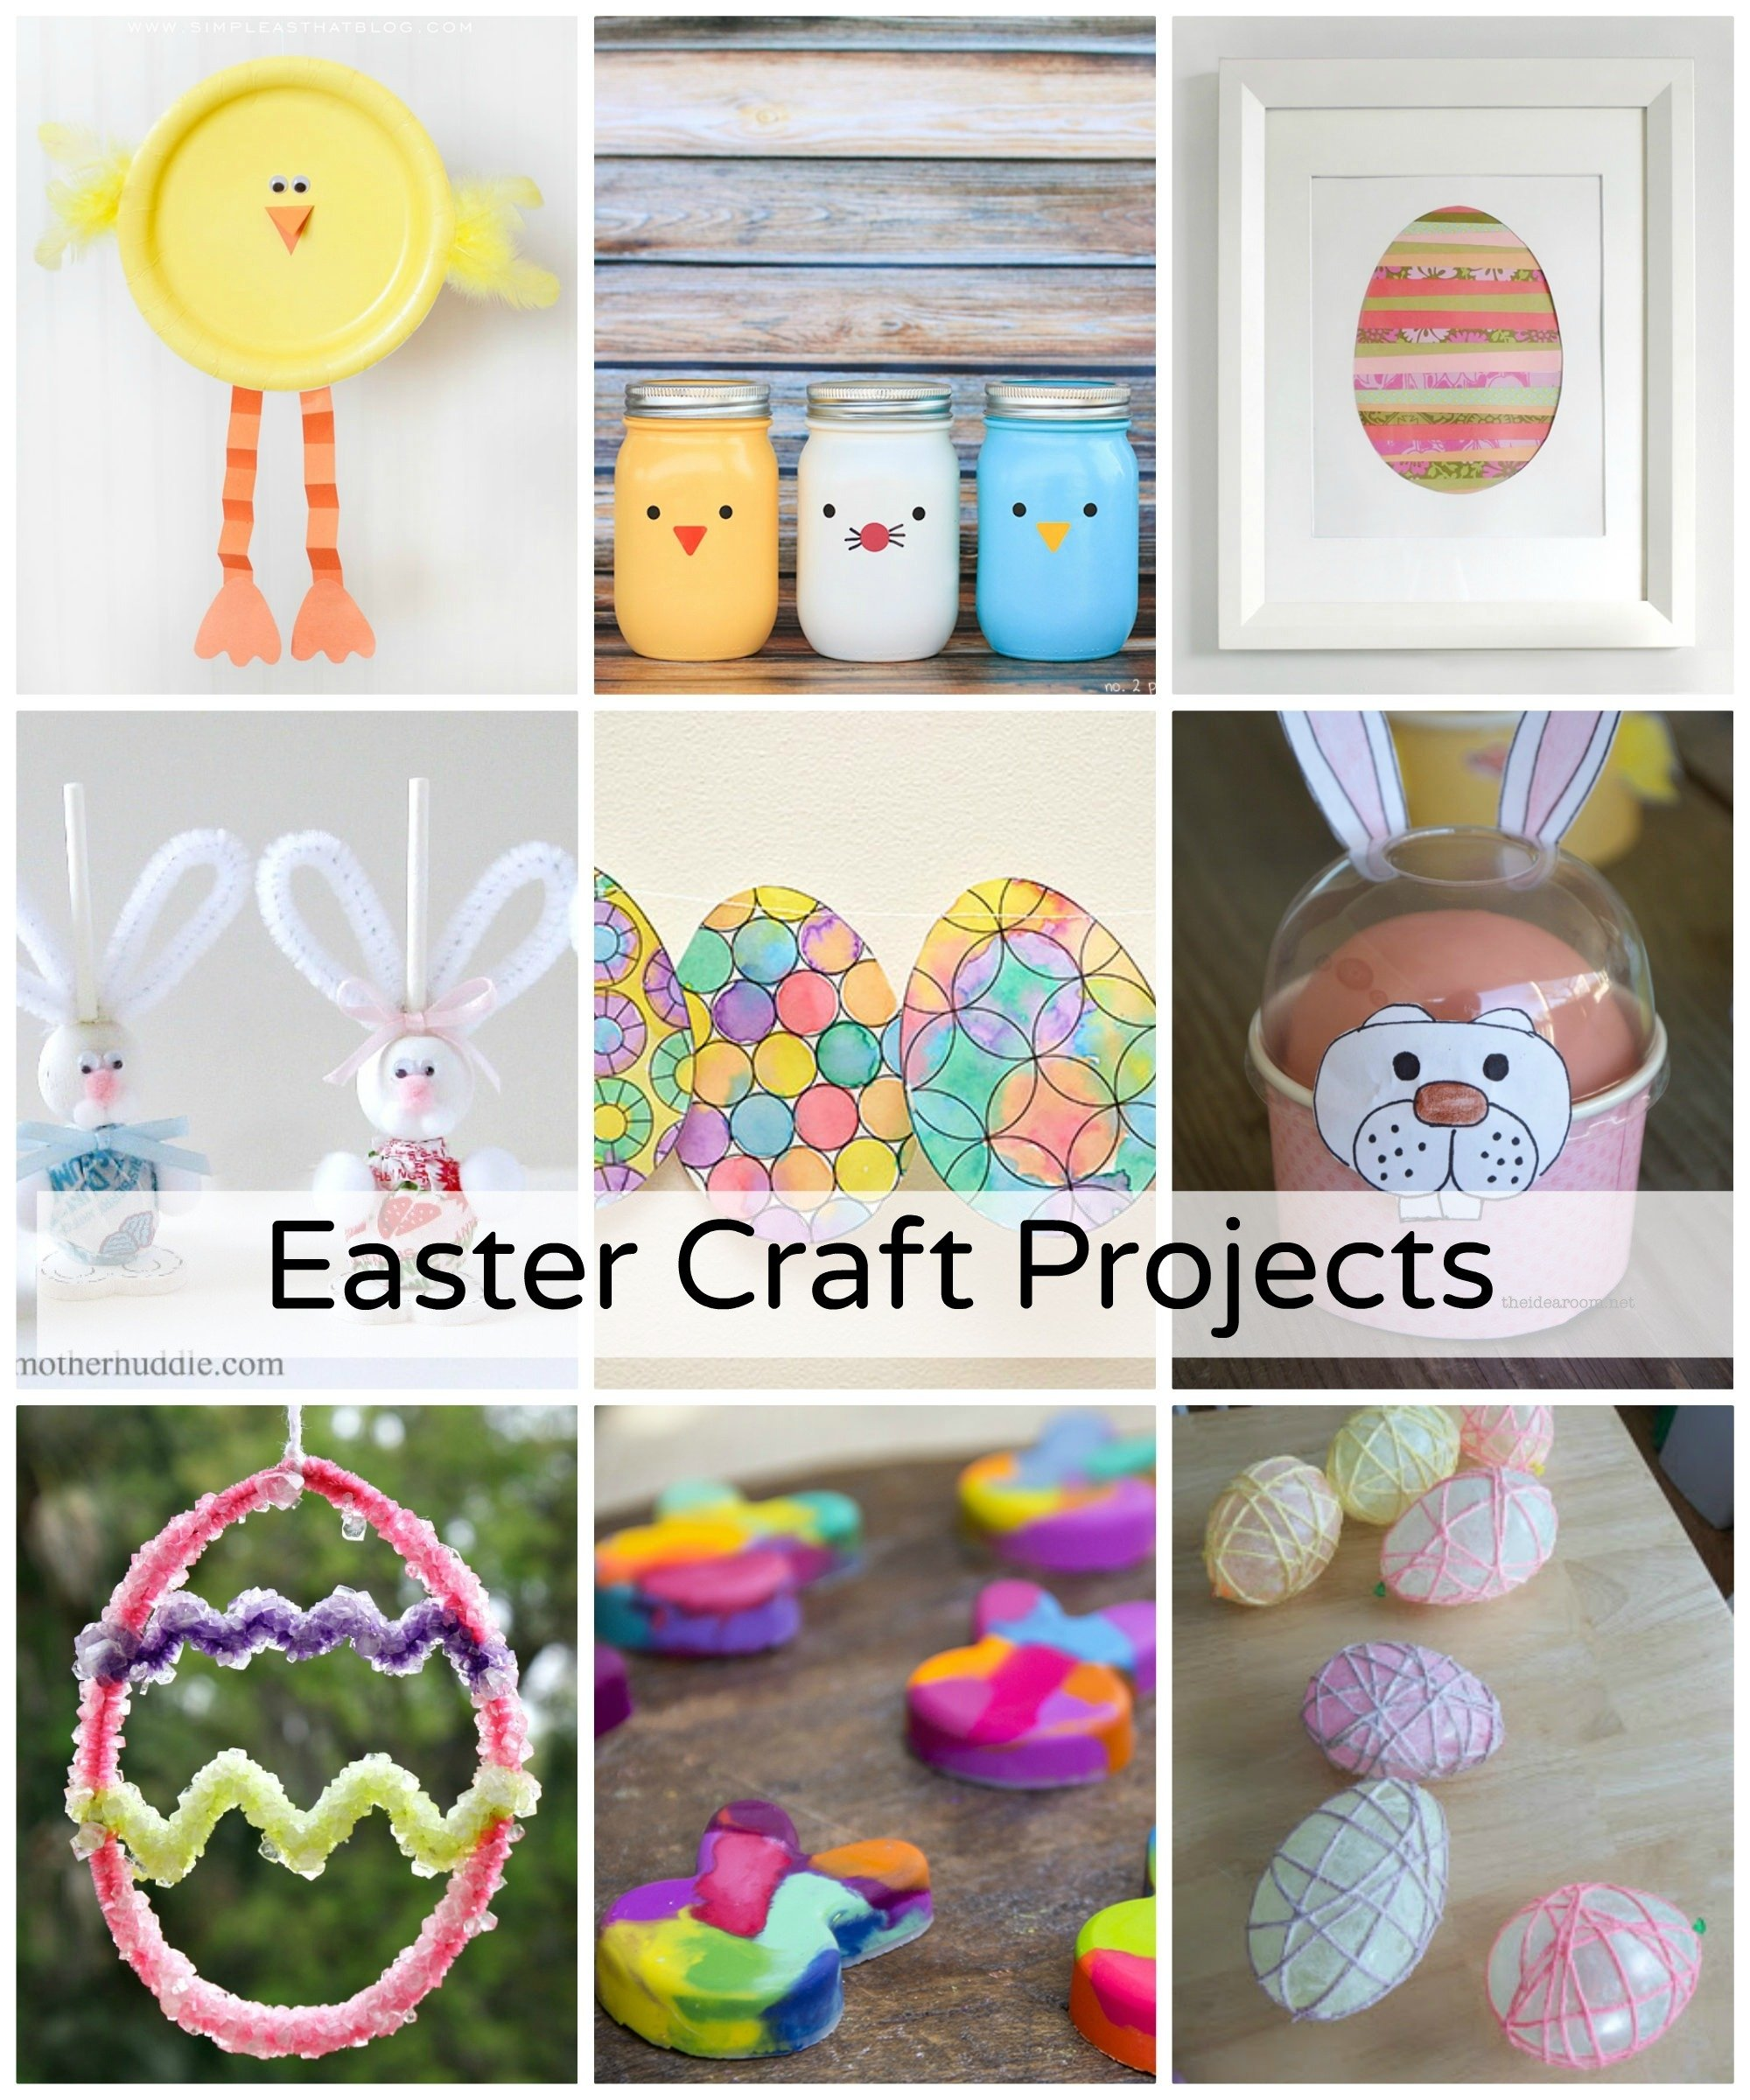 97 Simple Craft Making Ideas Tons Of Art And Craft Ideas For Kids